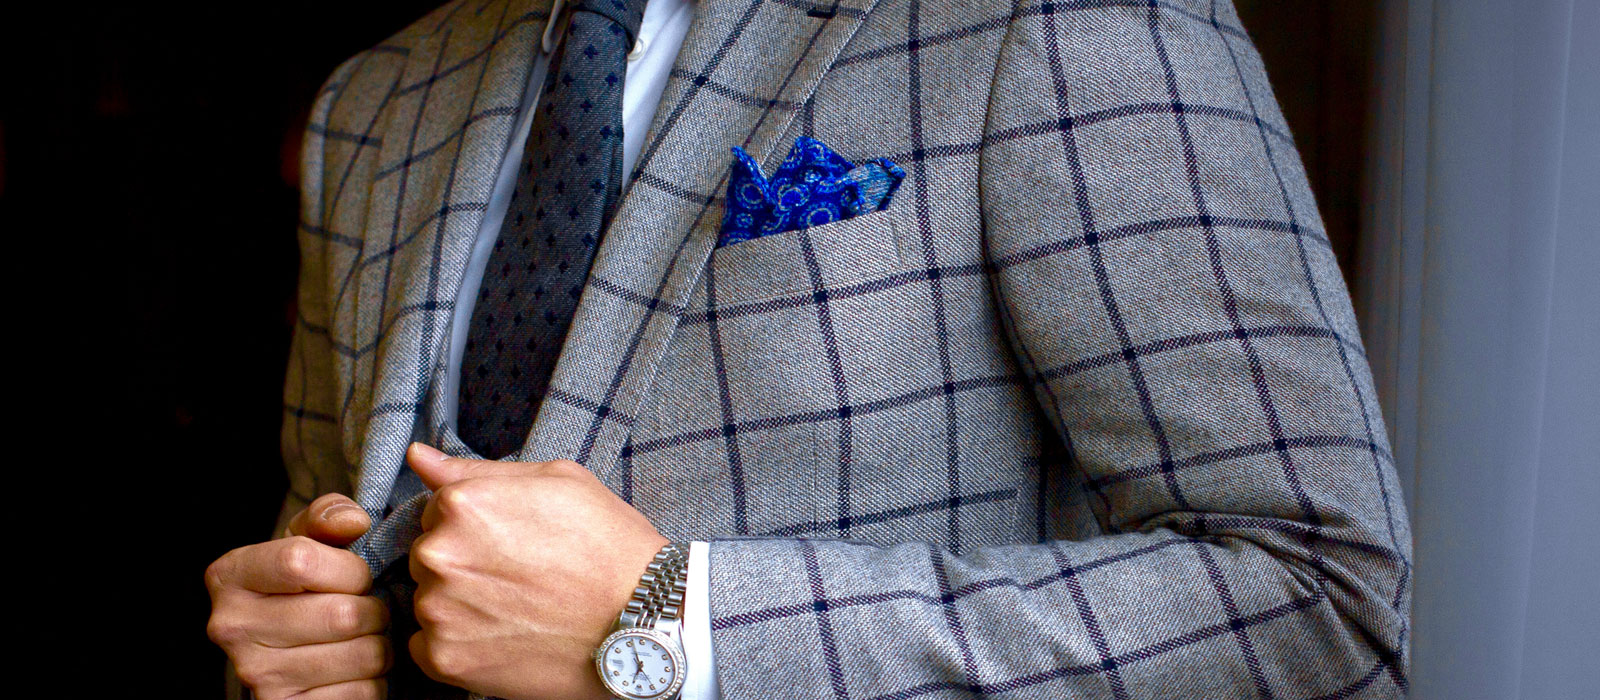 King & Bay, Bespoke Clothing for Men